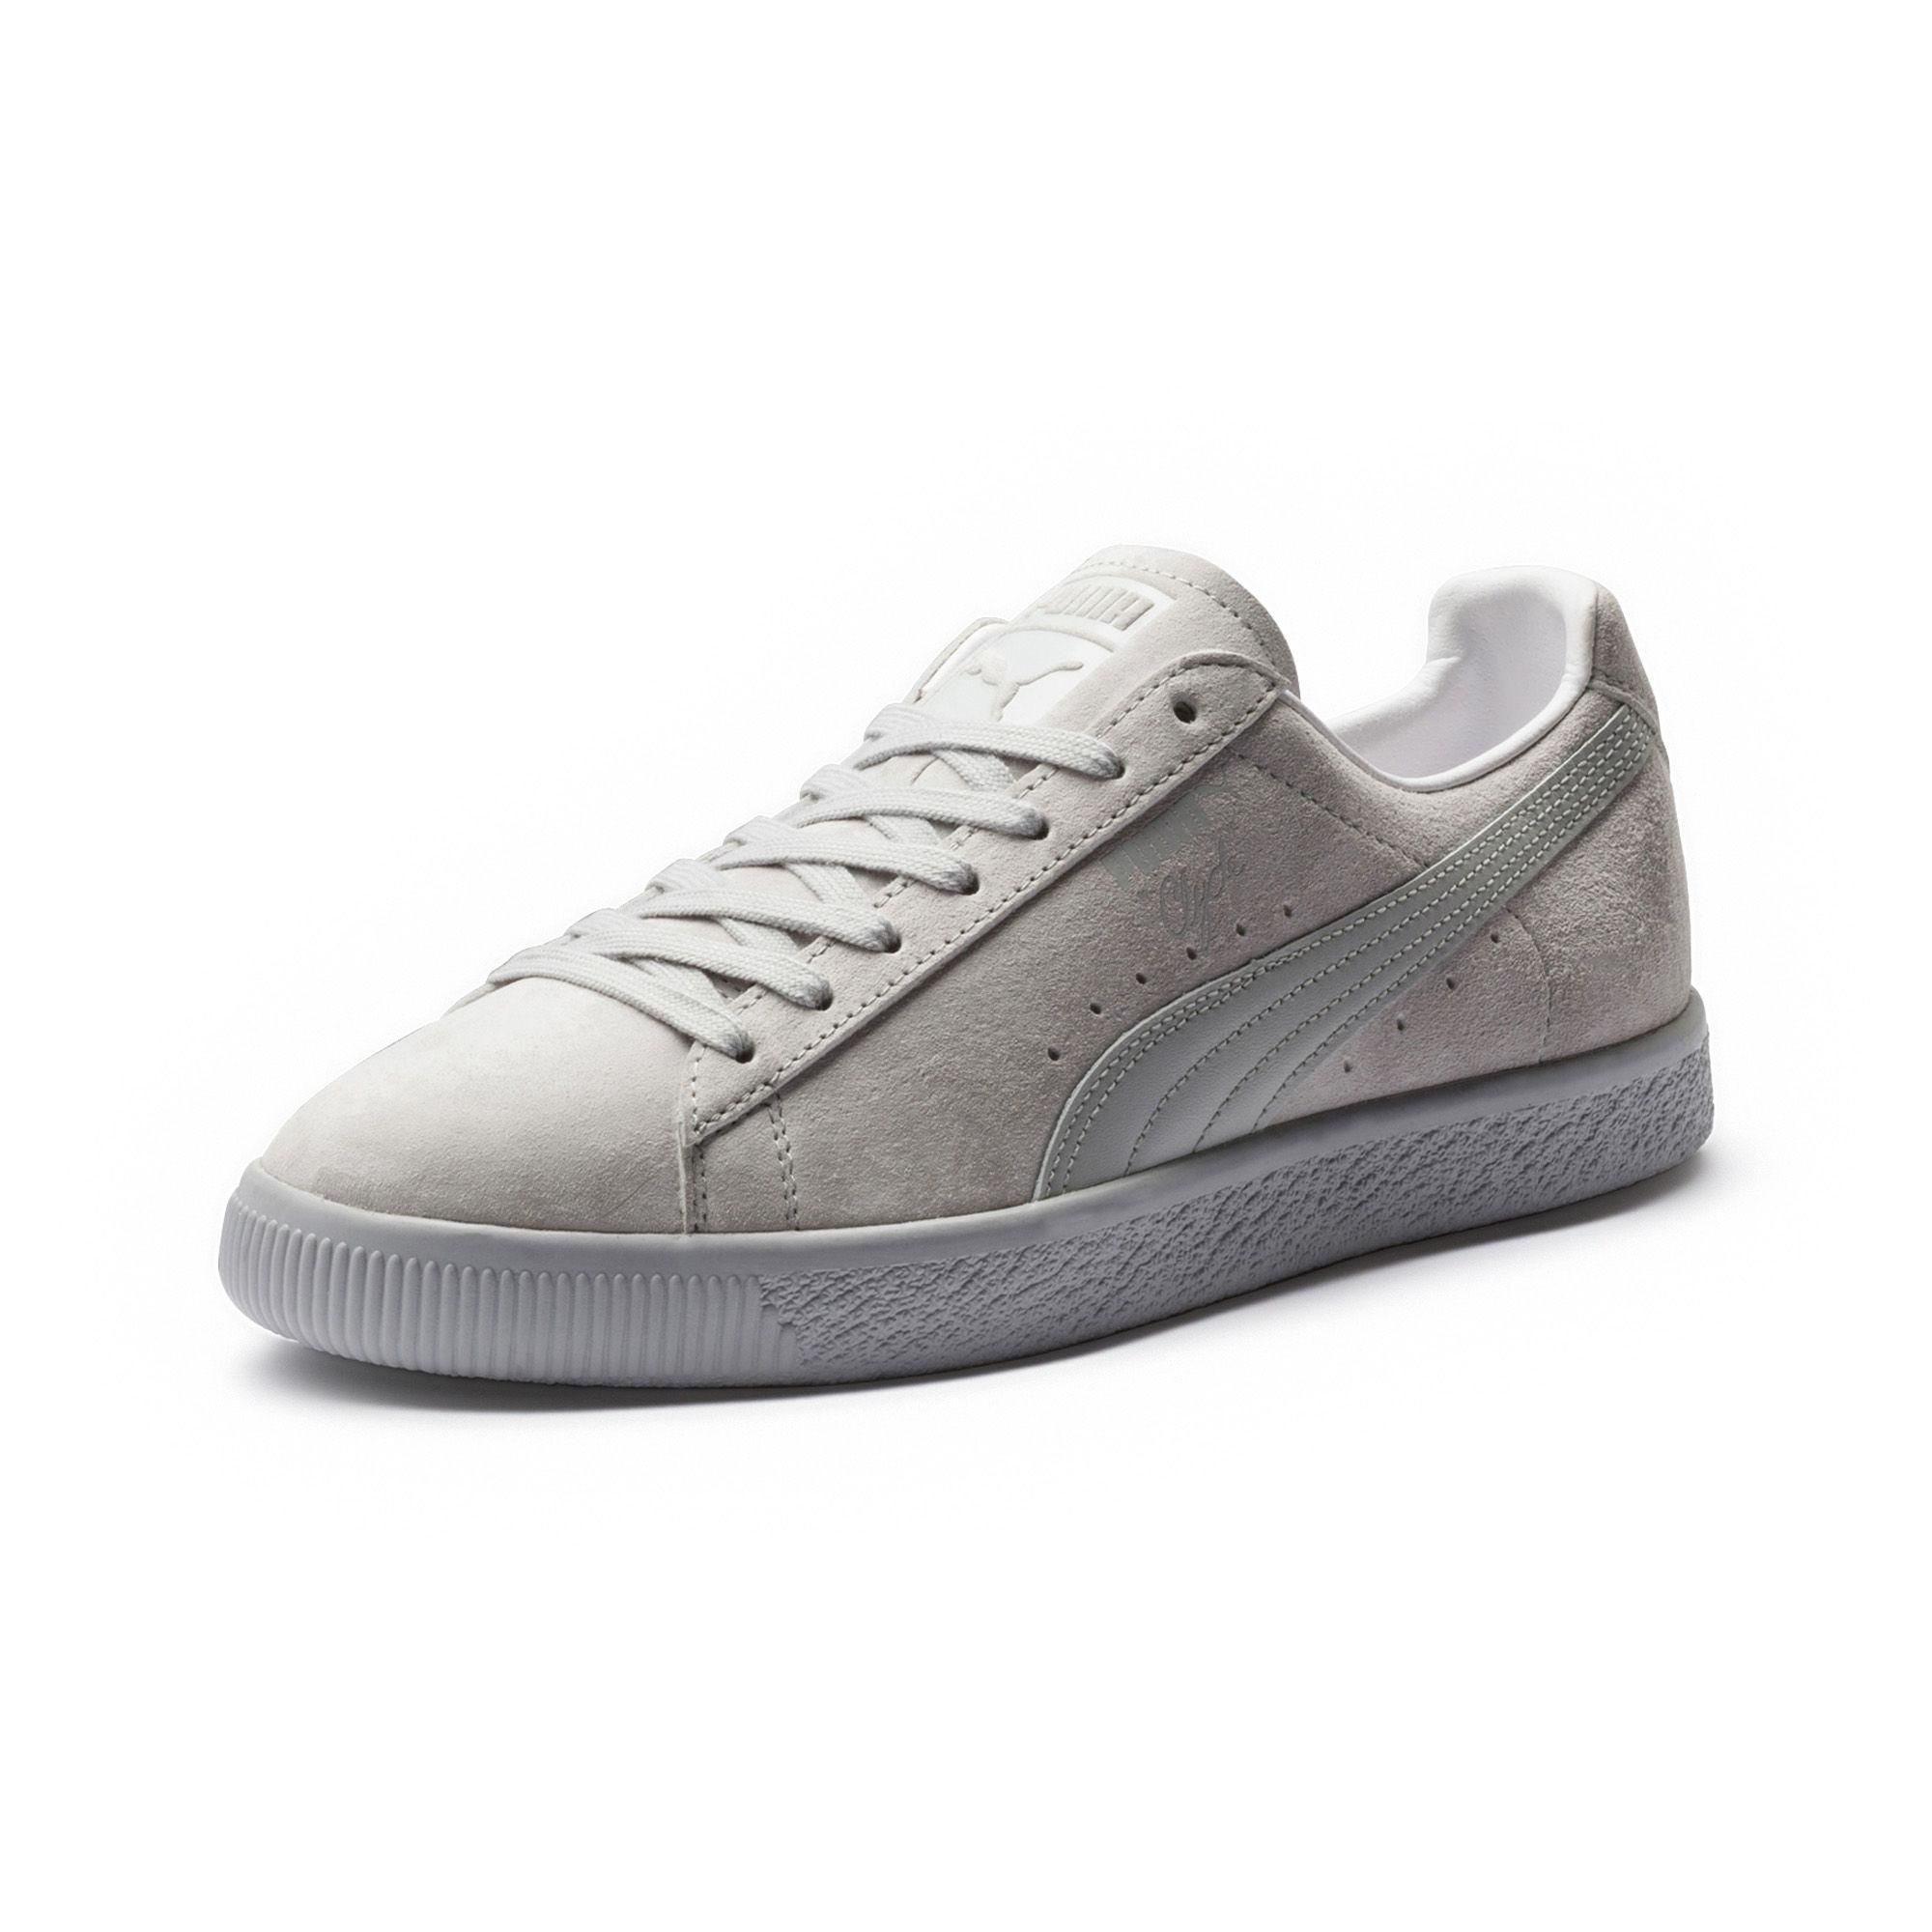 fa430db954d Lyst - PUMA Clyde Normcore Sneakers in Gray for Men